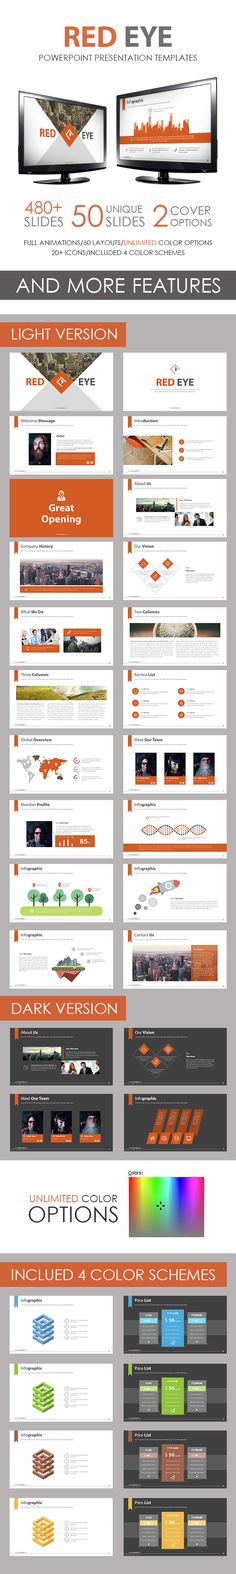 red eye powerpoint template | cleanses, flats and creative, Presentation templates